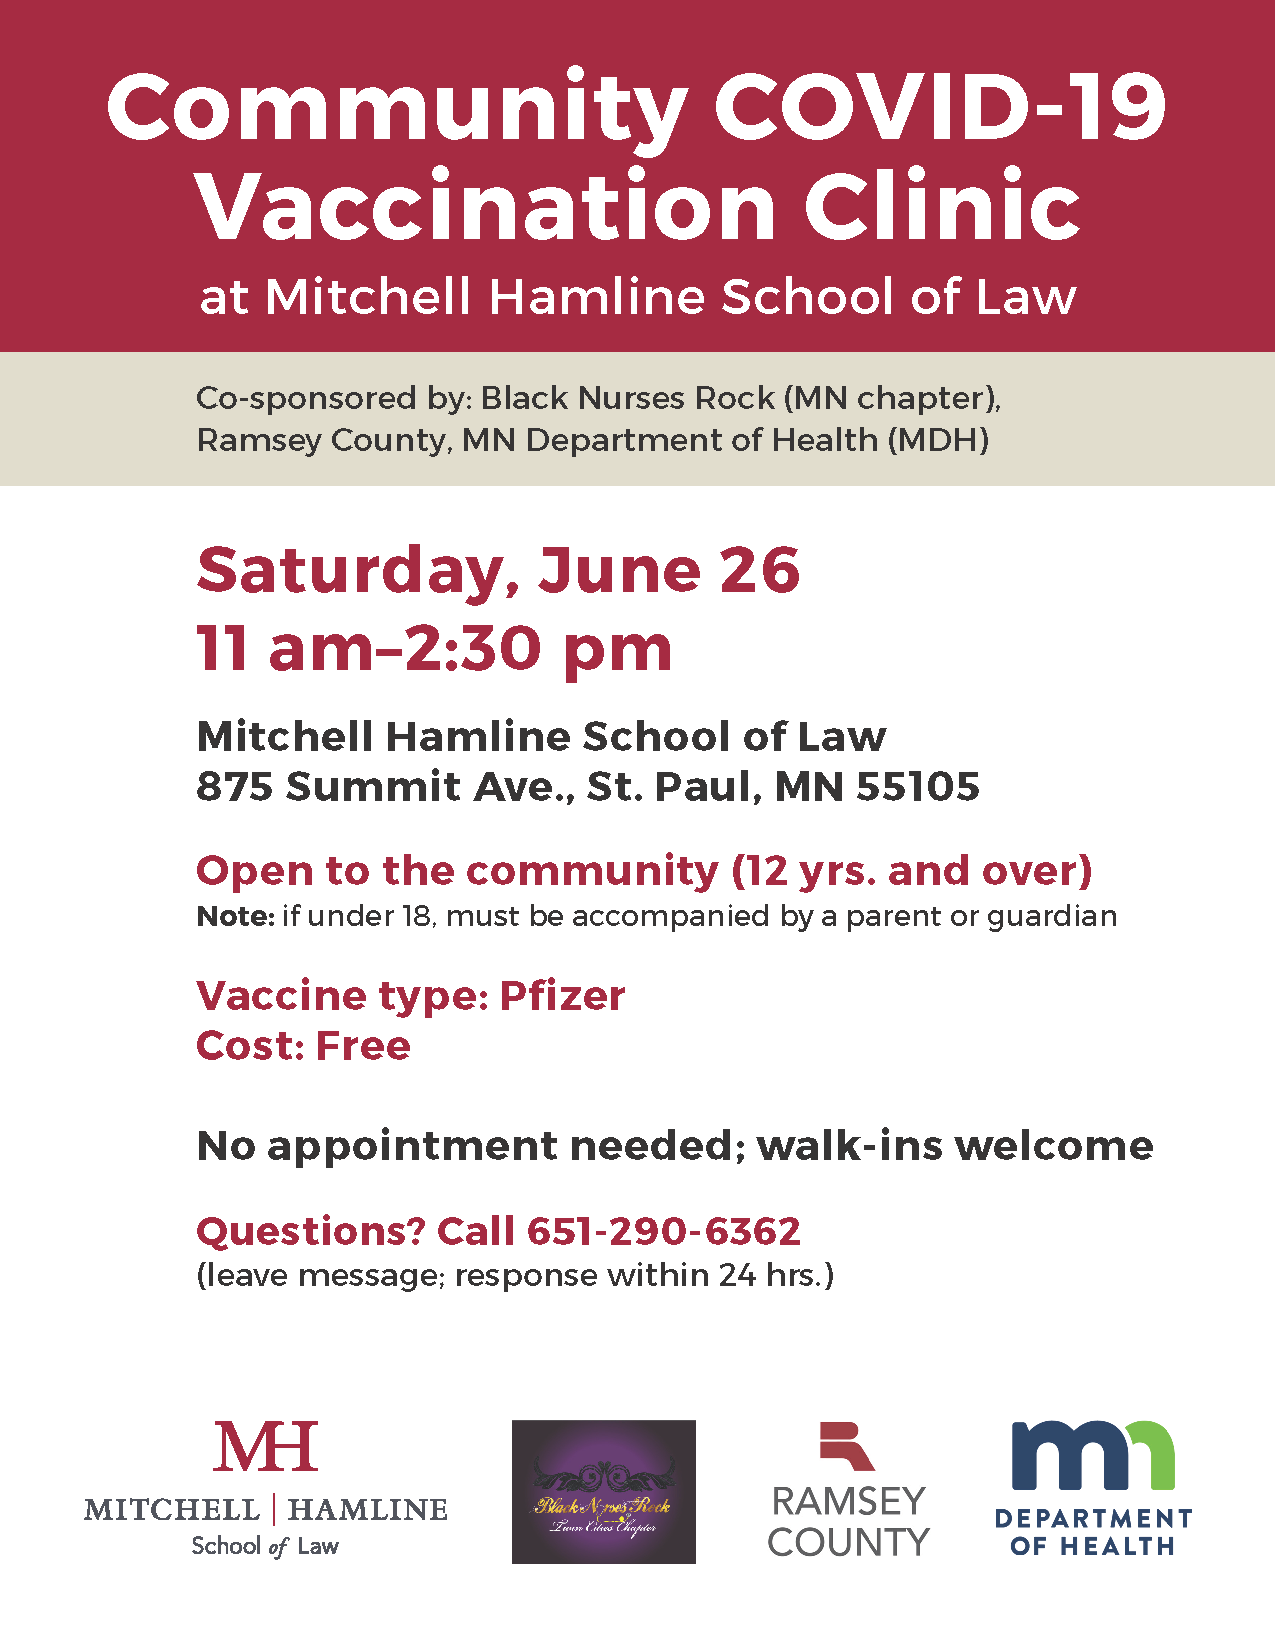 Vaccination Clinic Poster